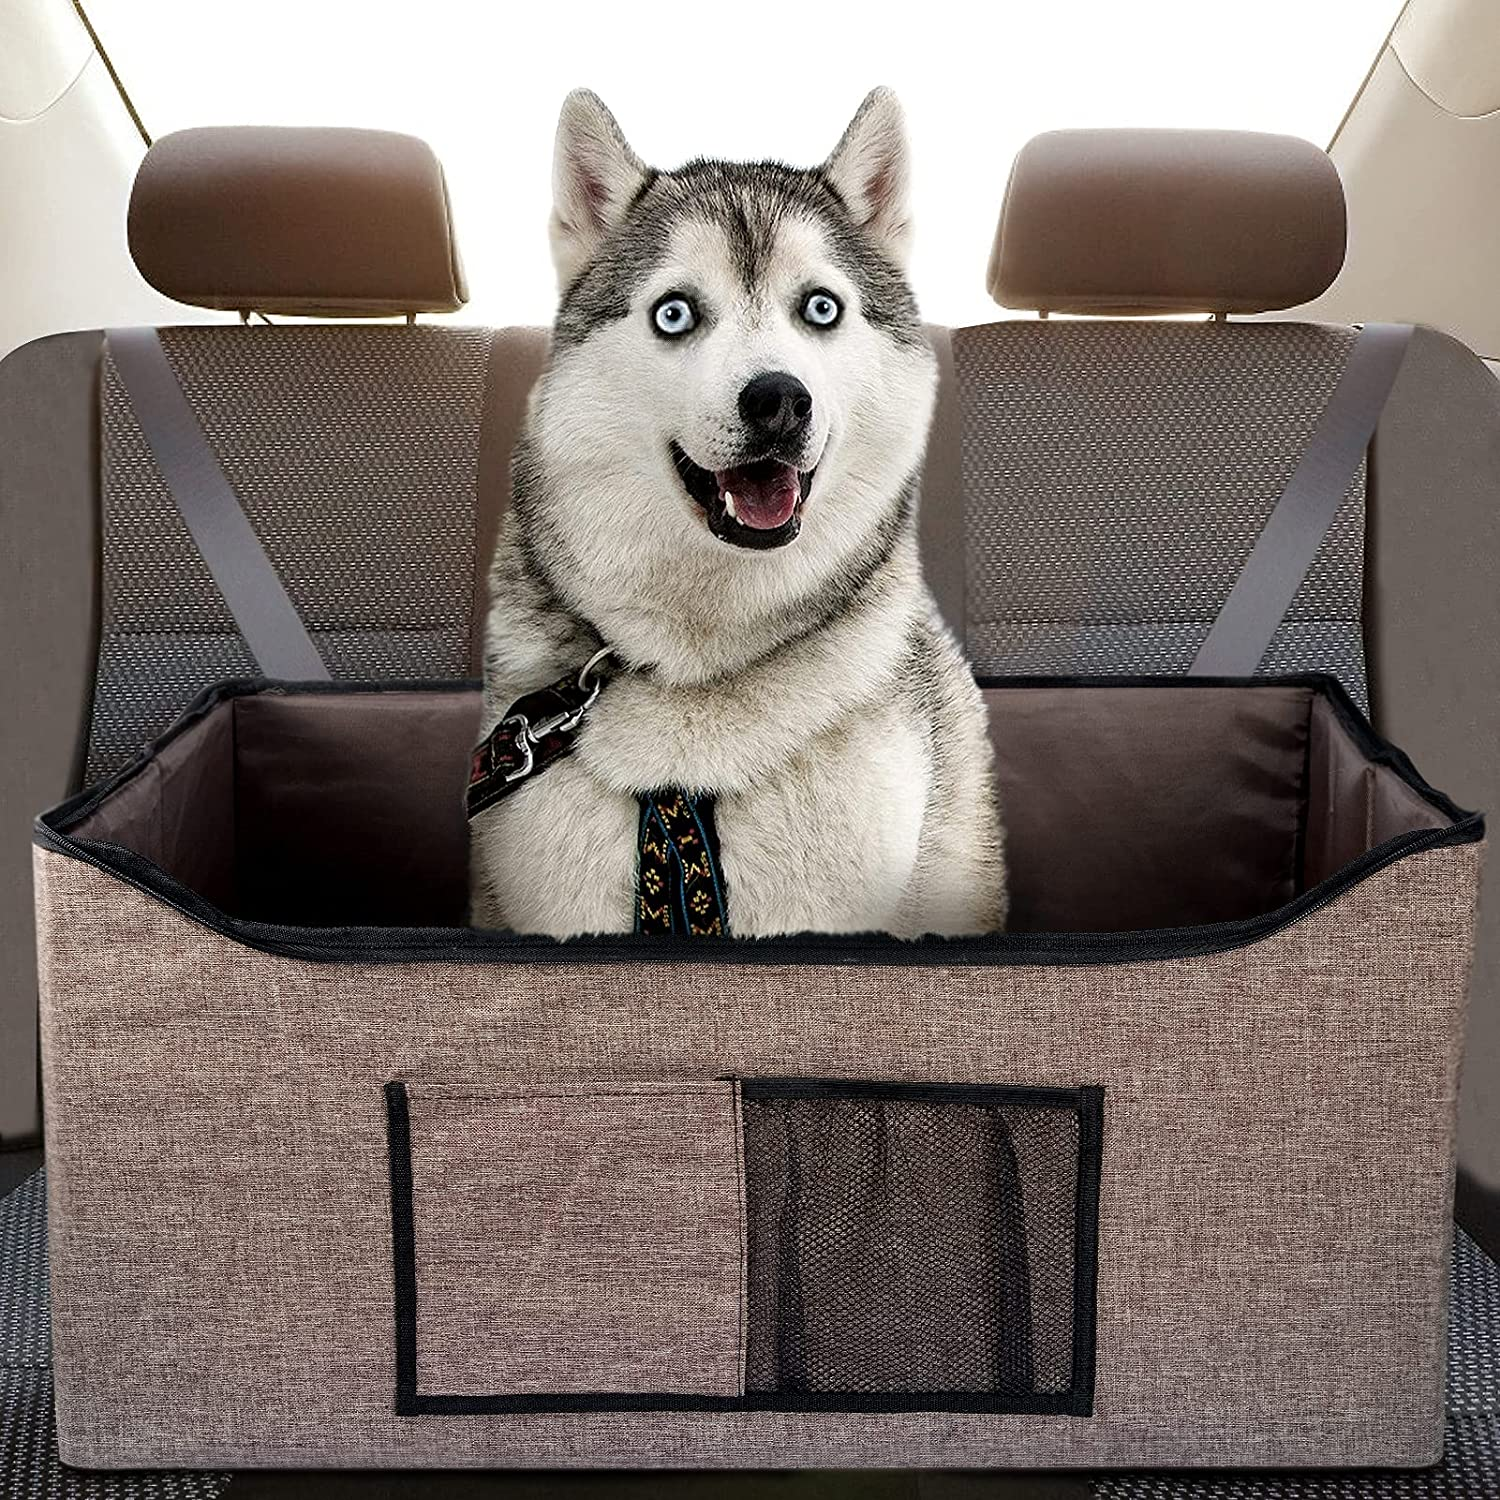 31x16inch Dog Car Booster Double-Sided Lining Seat- Cashmere Popular products National products